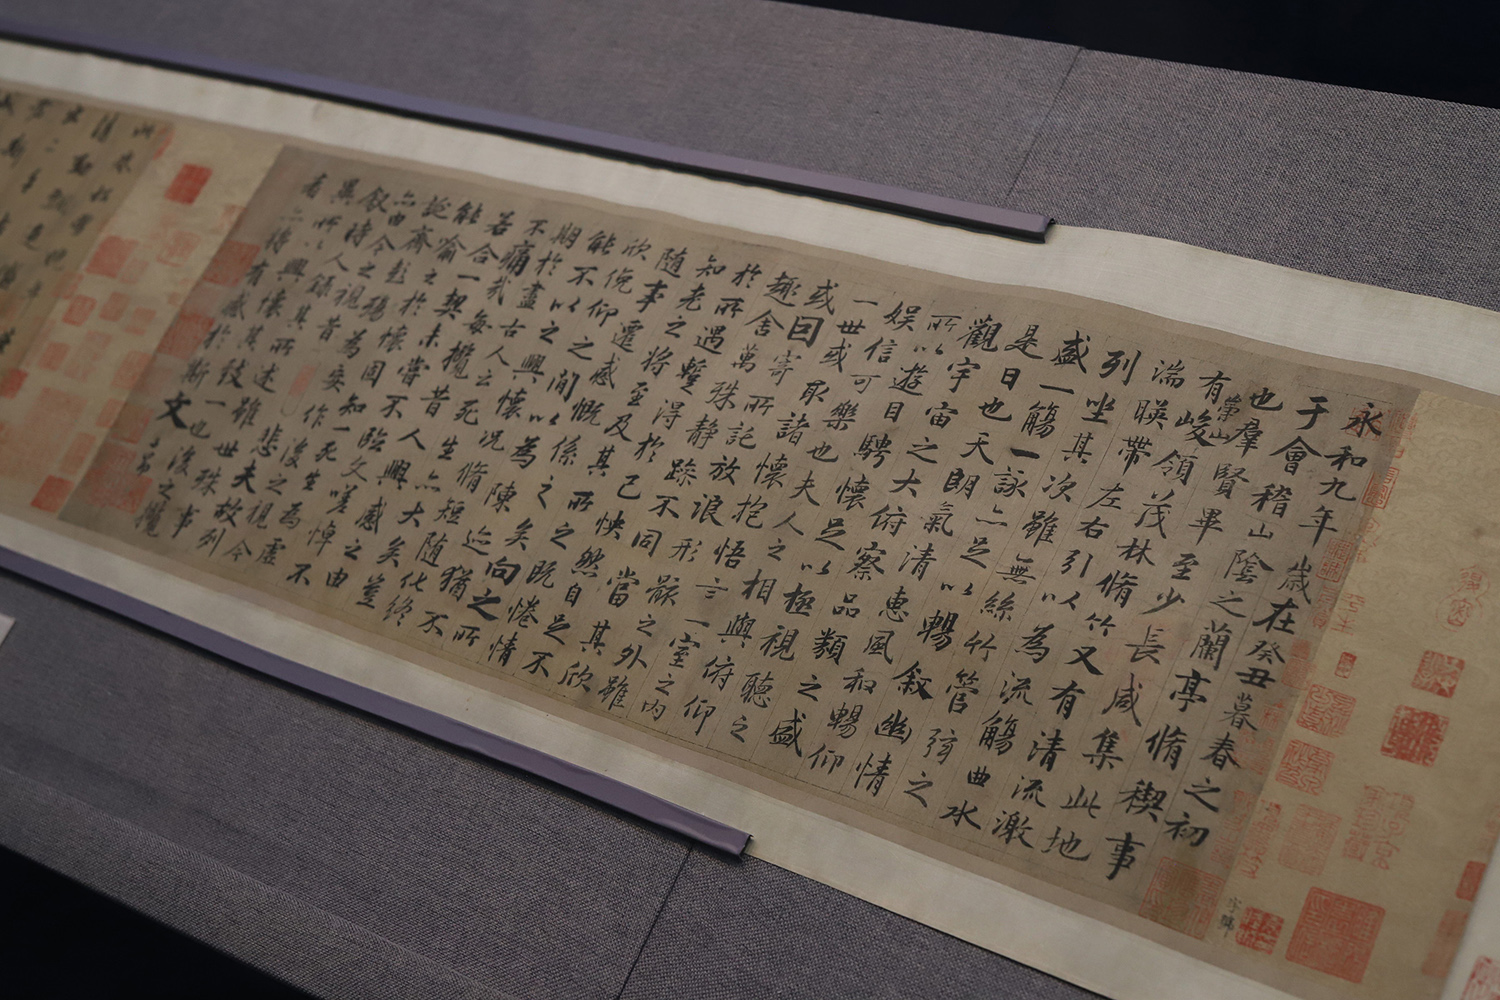 Zhao Mengfu: Preface to the Poems Composed at the Orchid Pavilion after Wang Xizhi